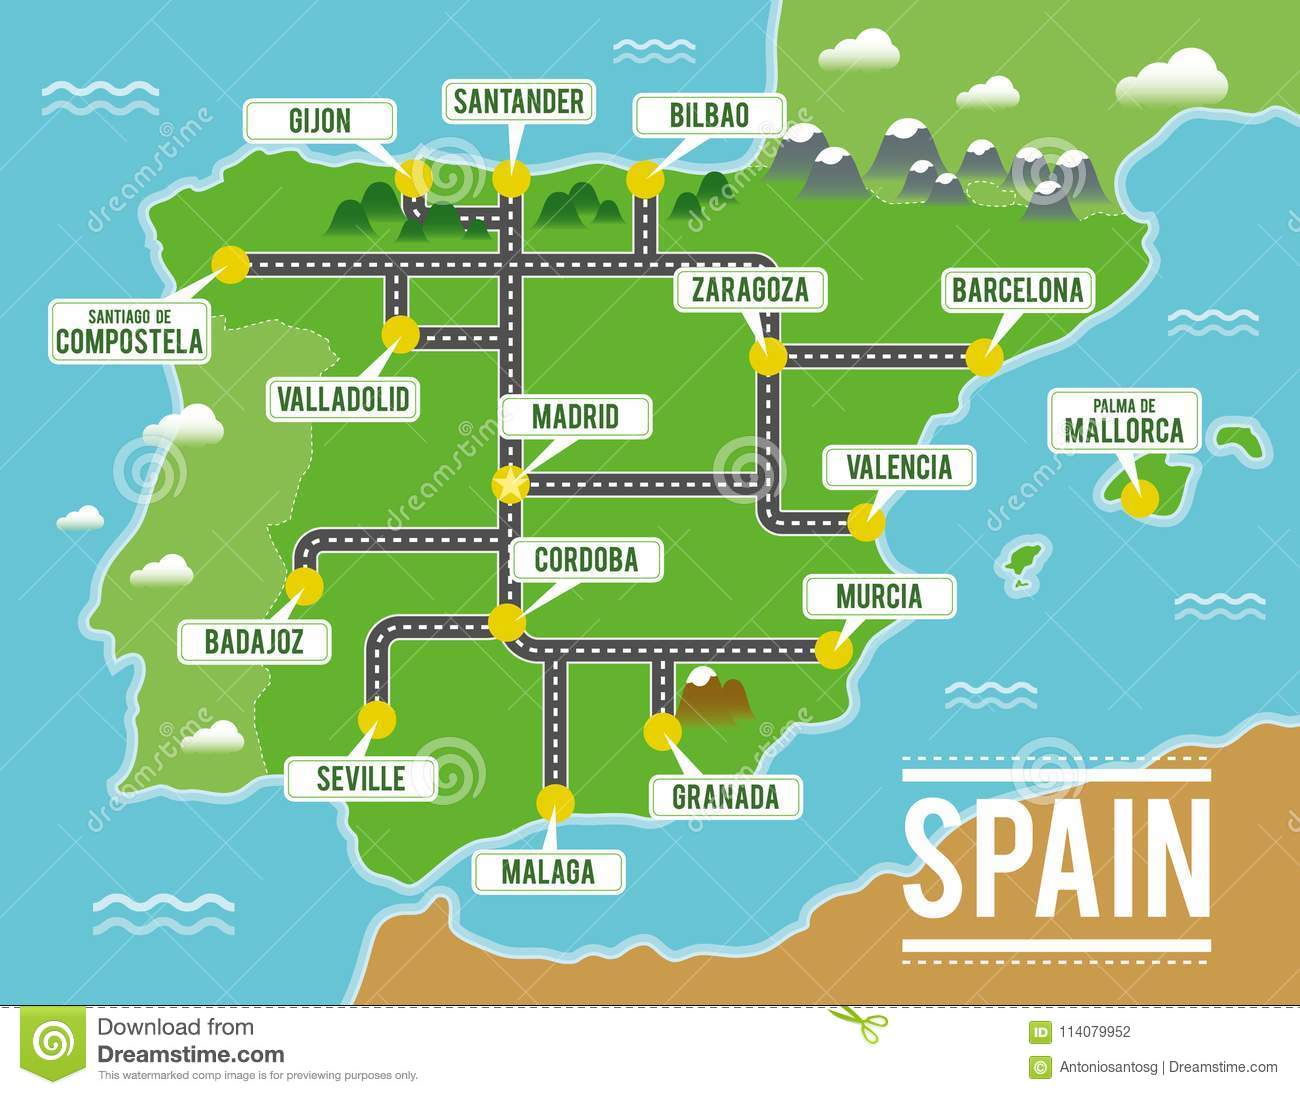 Map Of Spain With Cities Cartoon Vector Map Of Spain. Travel Illustration With Spanish Main